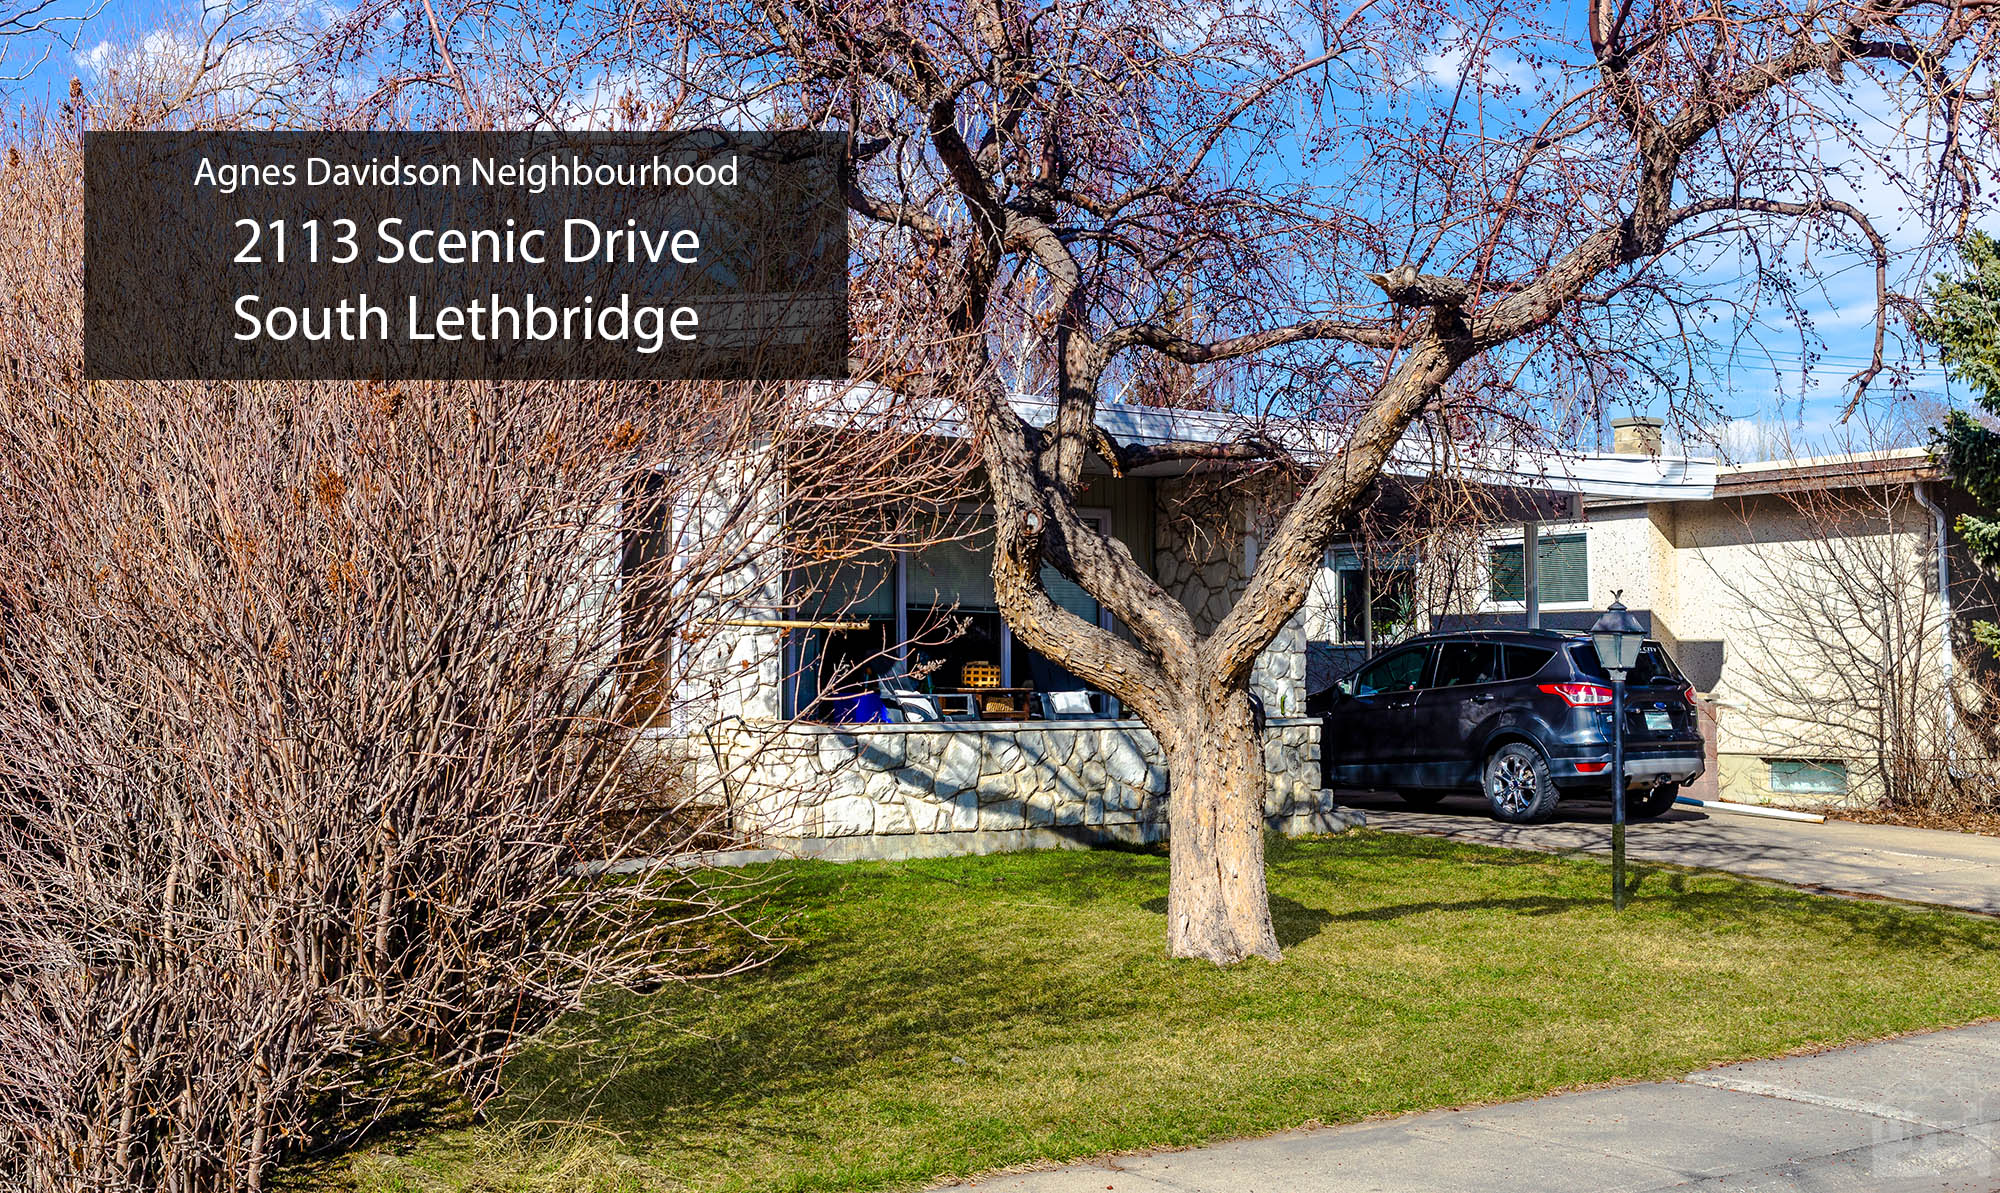 2113 Scenic Drive South Lethbridge (Lower Suite) Cover image